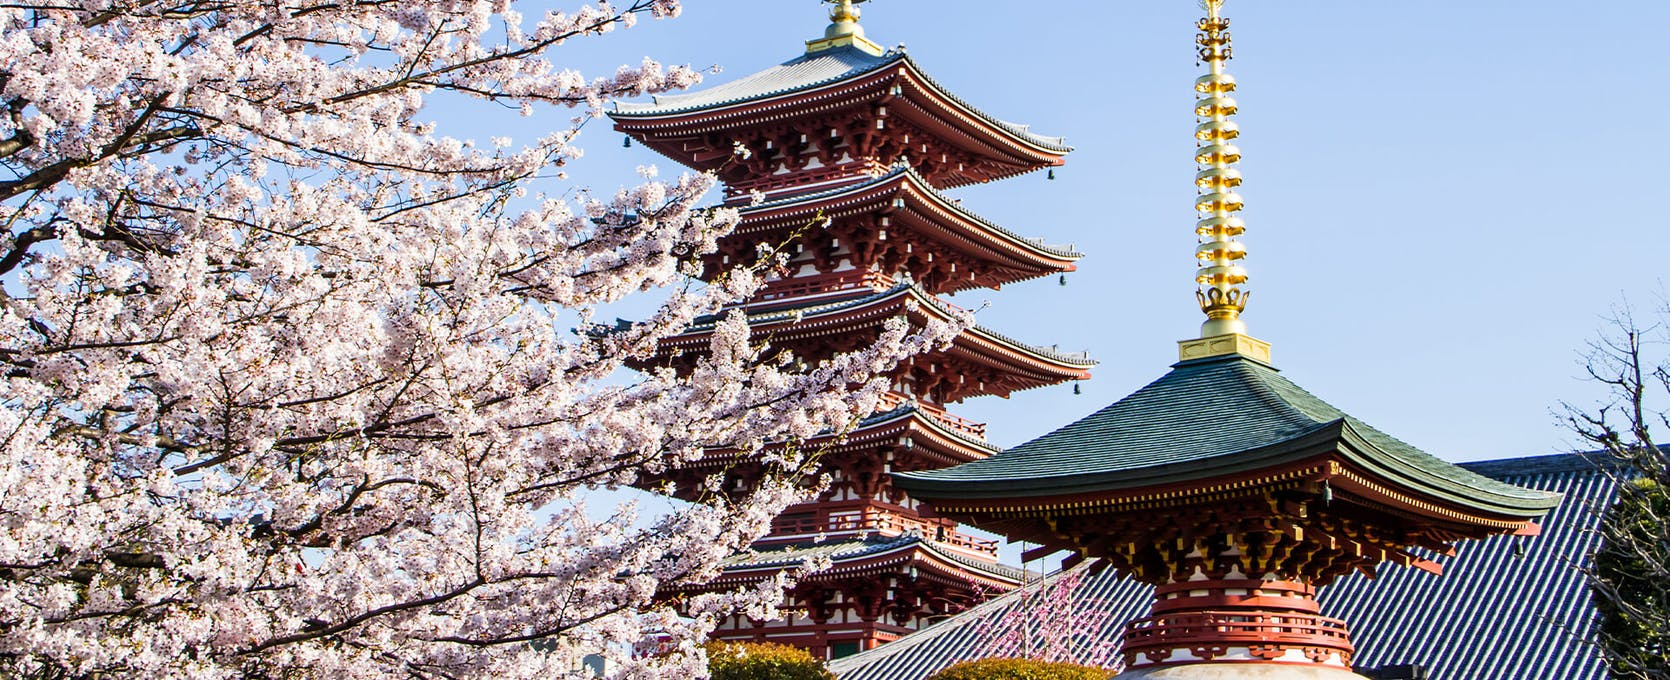 Japanese buildings with cherry blossom trees